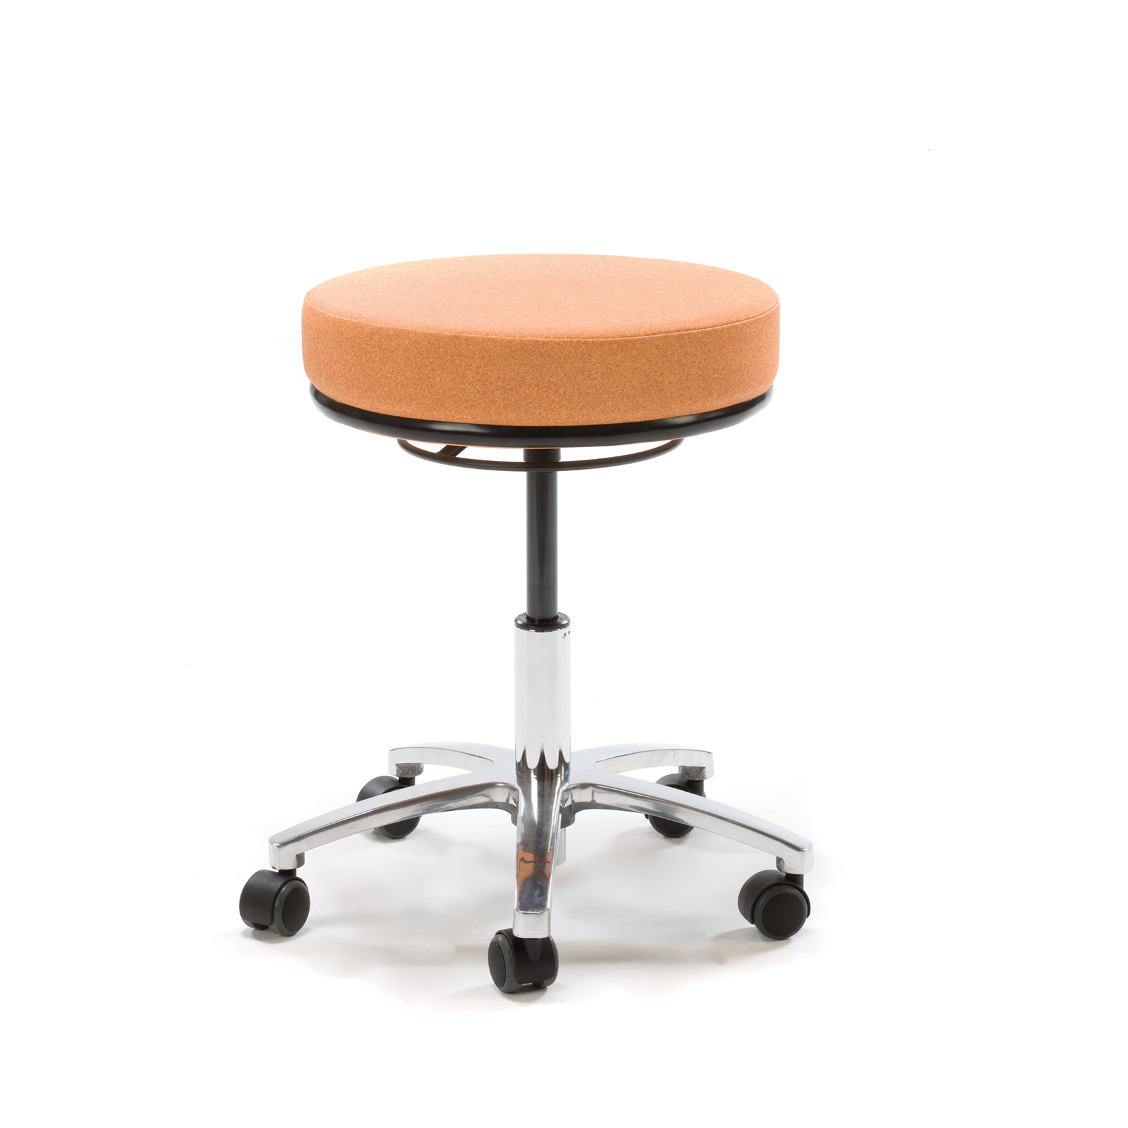 Round Medical Stools | SEERS Medical The UKu0027s Leading Couch Manufacturer  sc 1 st  SEERS Medical & Round Medical Stools | SEERS Medical The UKu0027s Leading Couch ... islam-shia.org